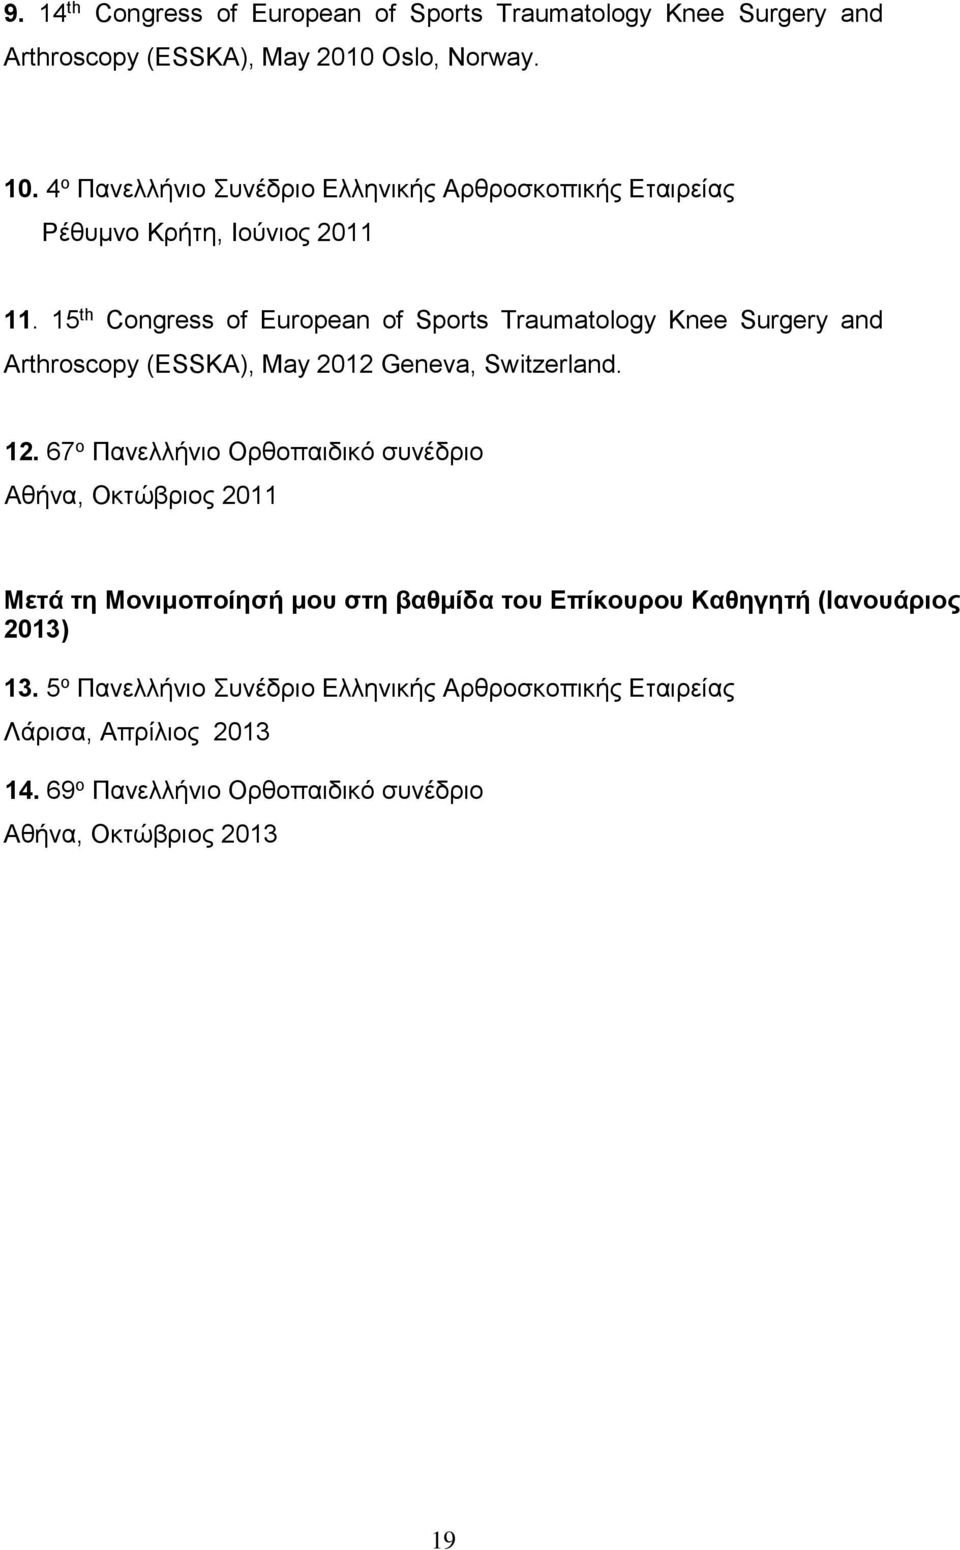 15 th Congress of European of Sports Traumatology Knee Surgery and Arthroscopy (ESSKA), May 2012 Geneva, Switzerland. 12.